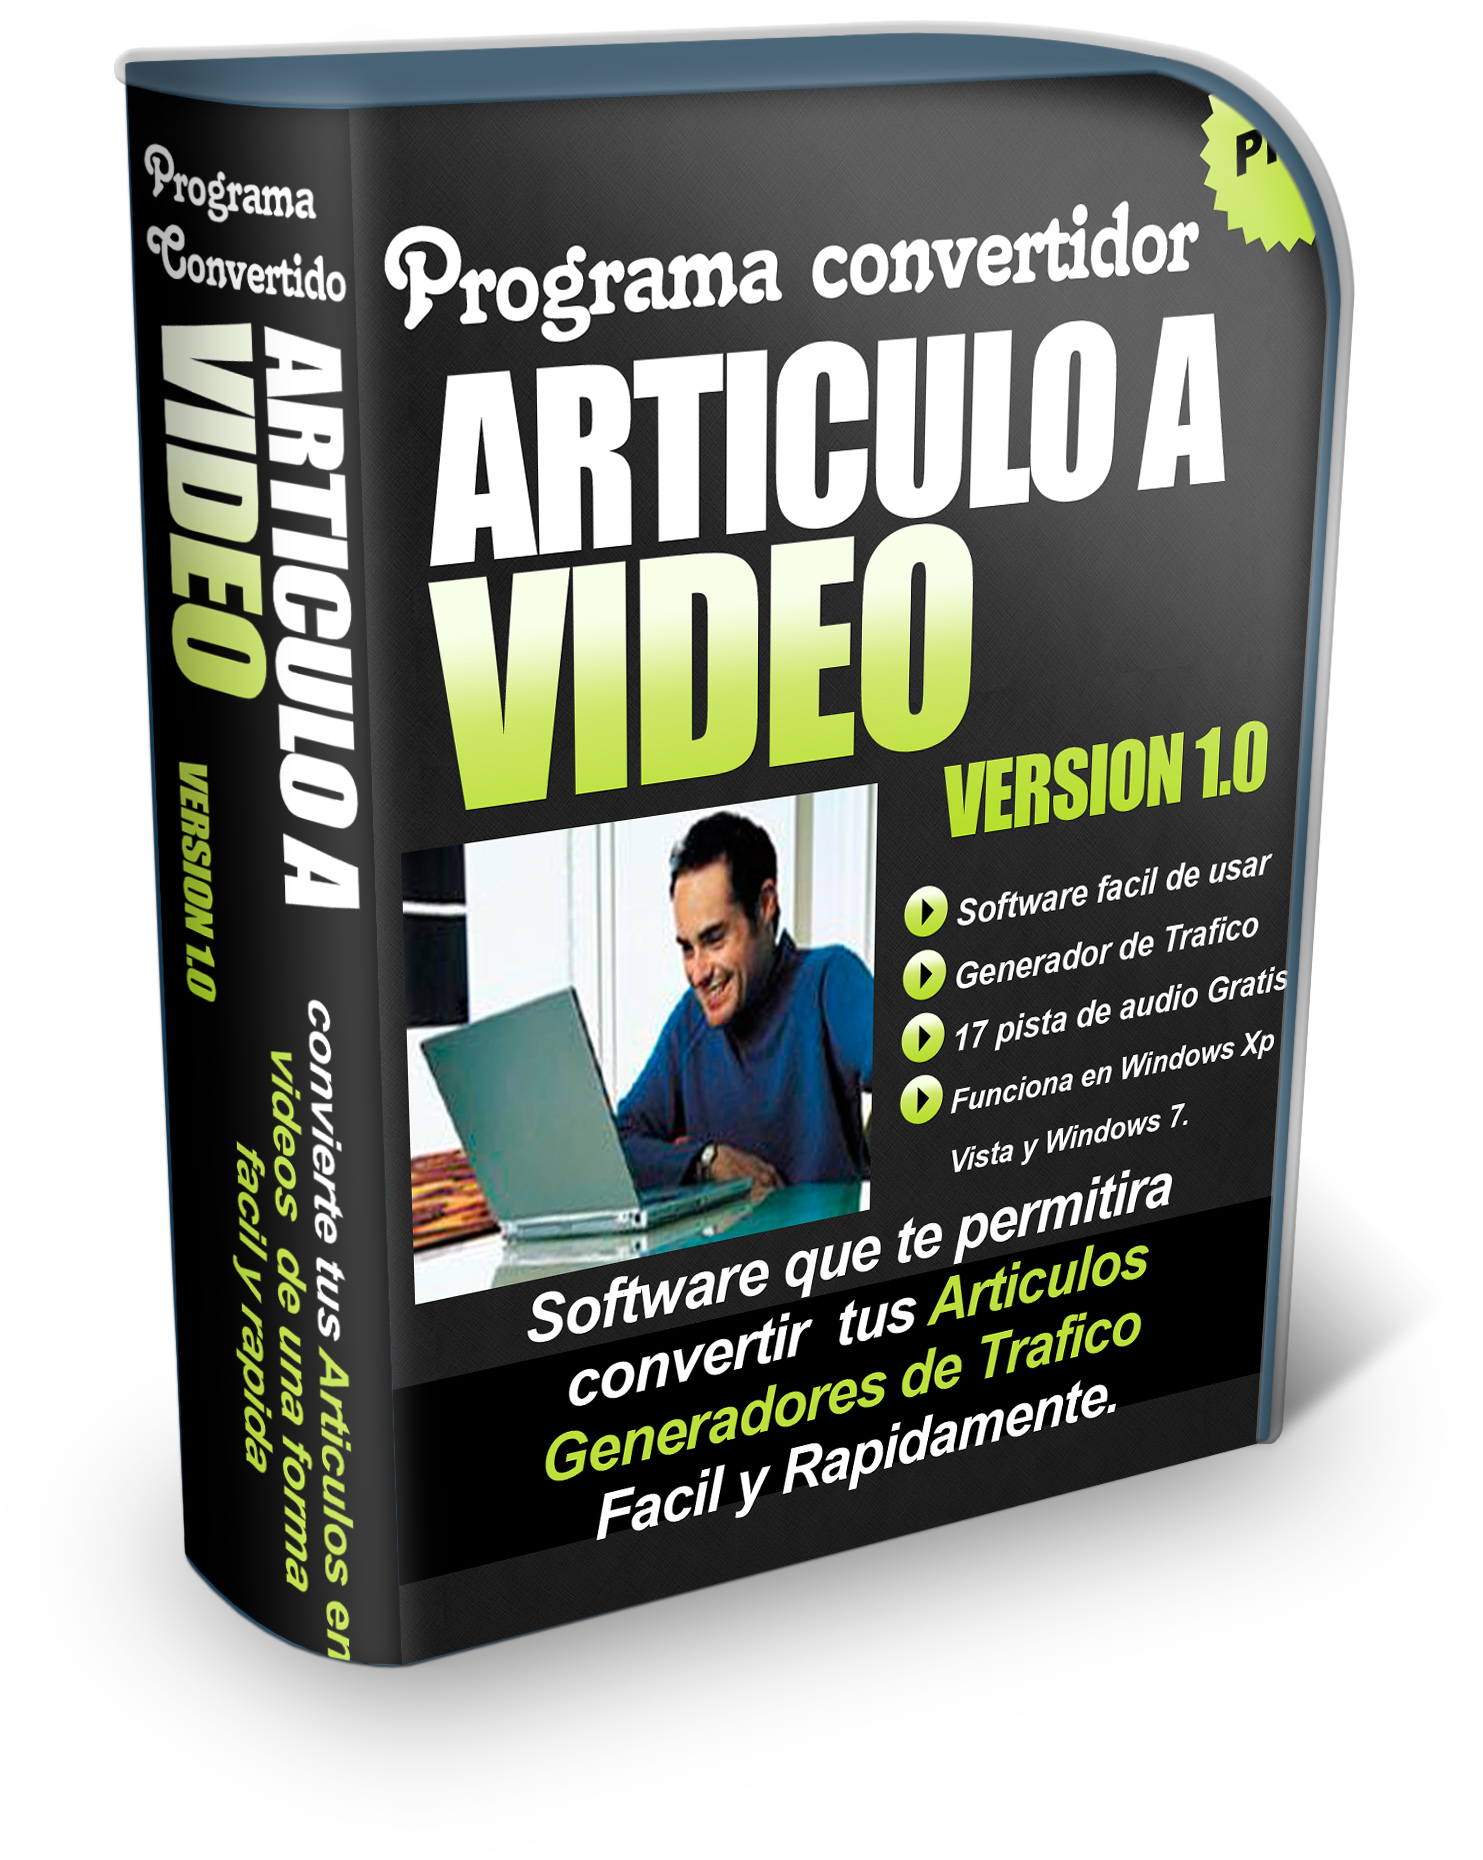 Give you a Powerfull Internet marketing Software that Will help turn text articles into videos with background music in 45 secons